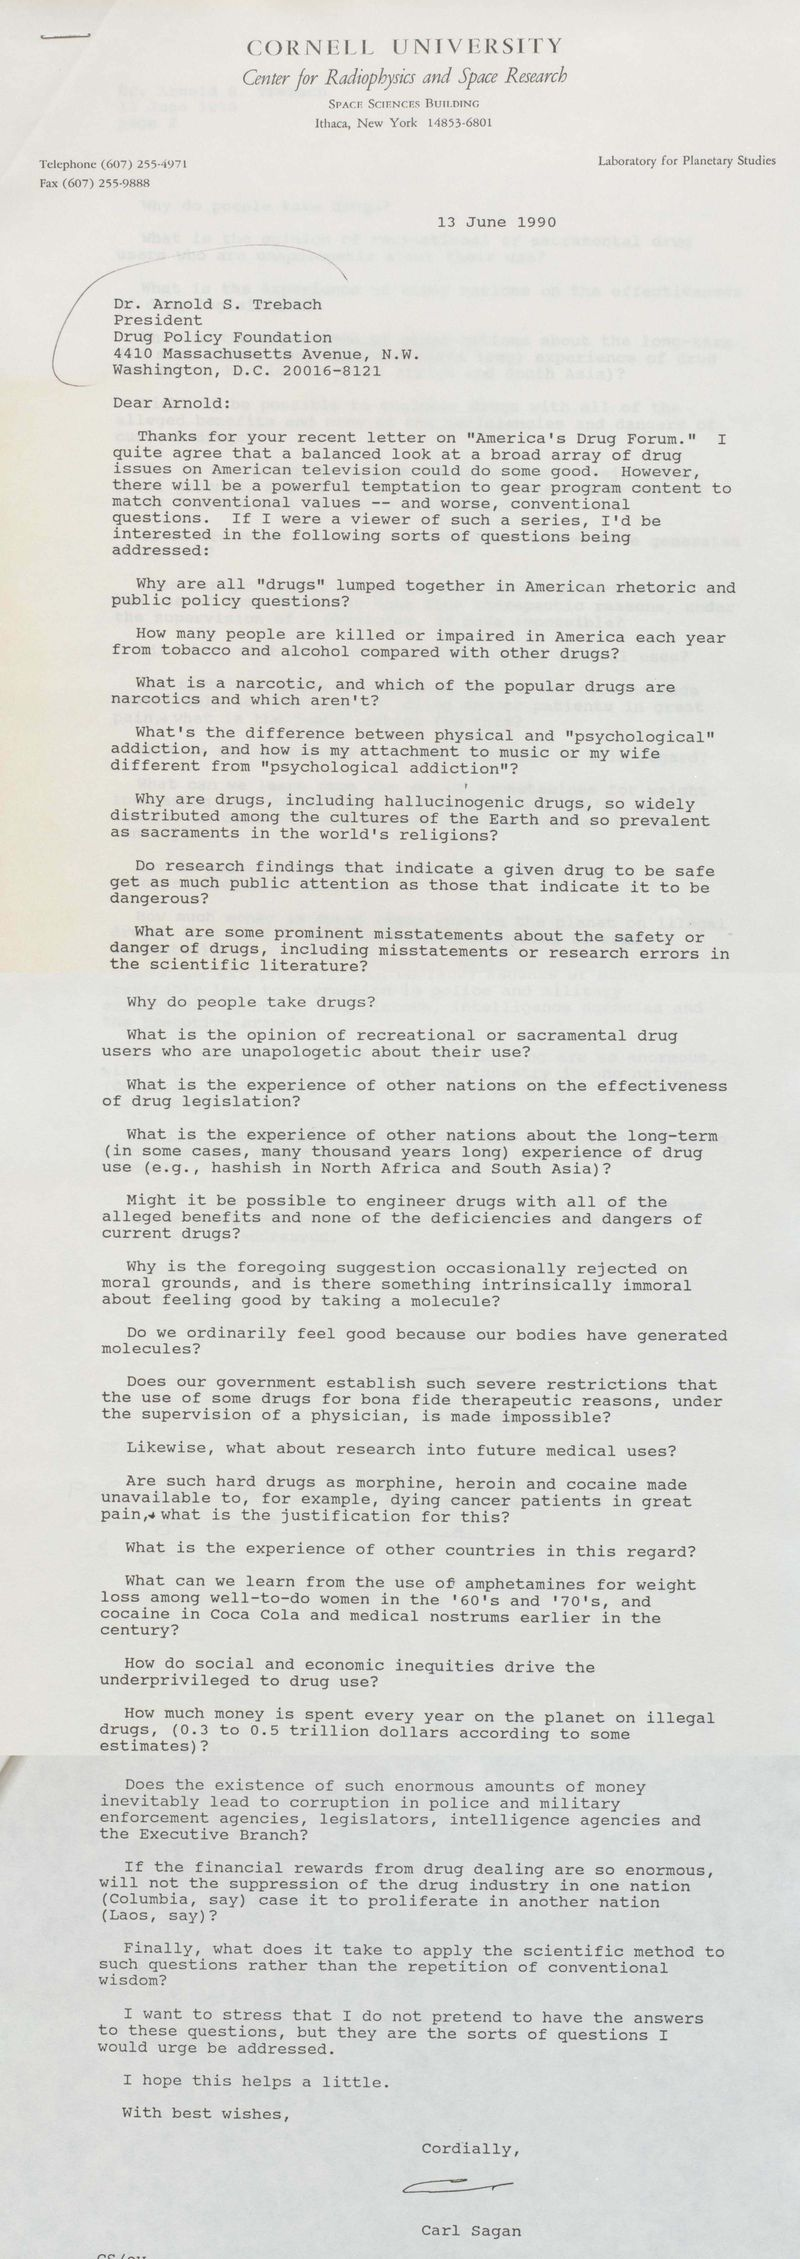 carl sagan s newly revealed letters about the war on drugs vox carl sagan 1990 war on drugs letter